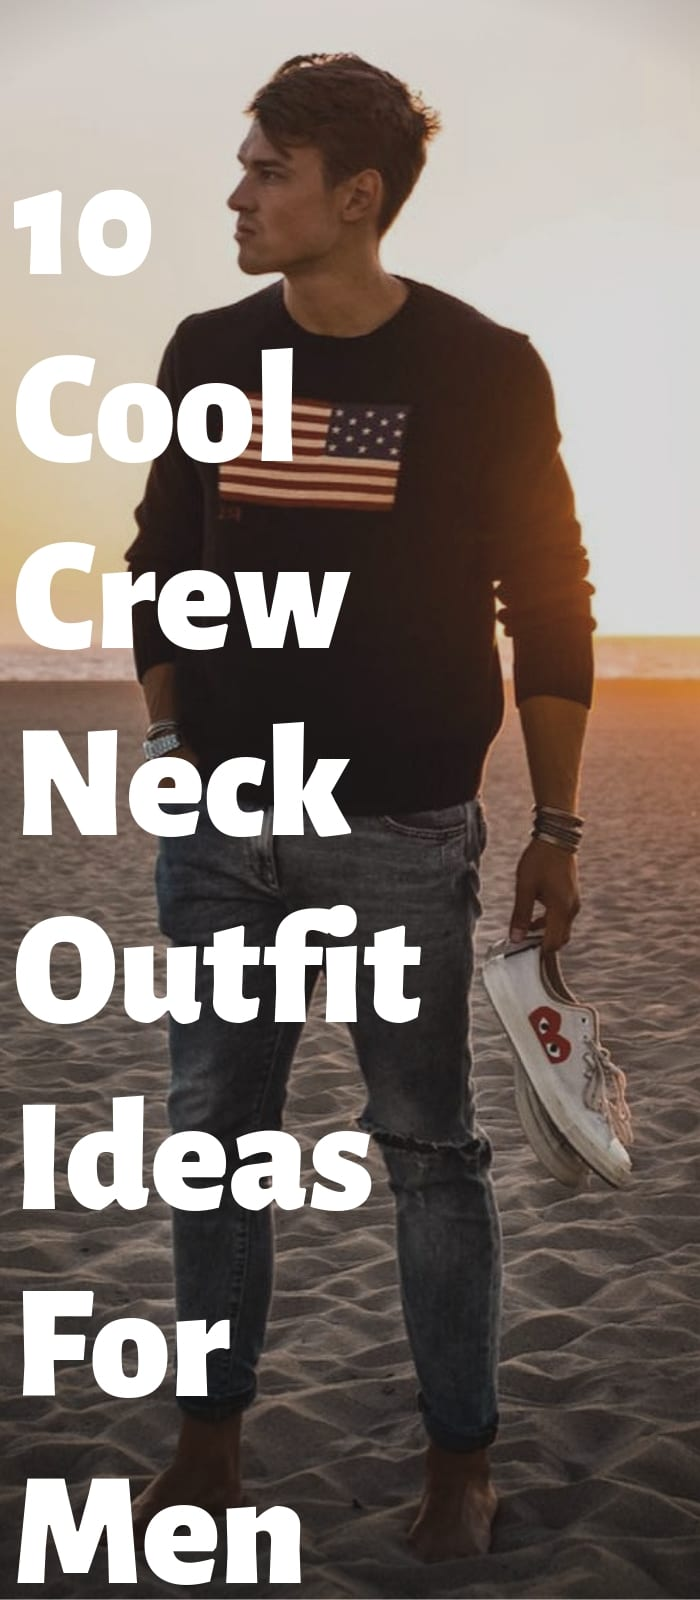 10-Crew-Neck-Outfit-Ideas-For-Men